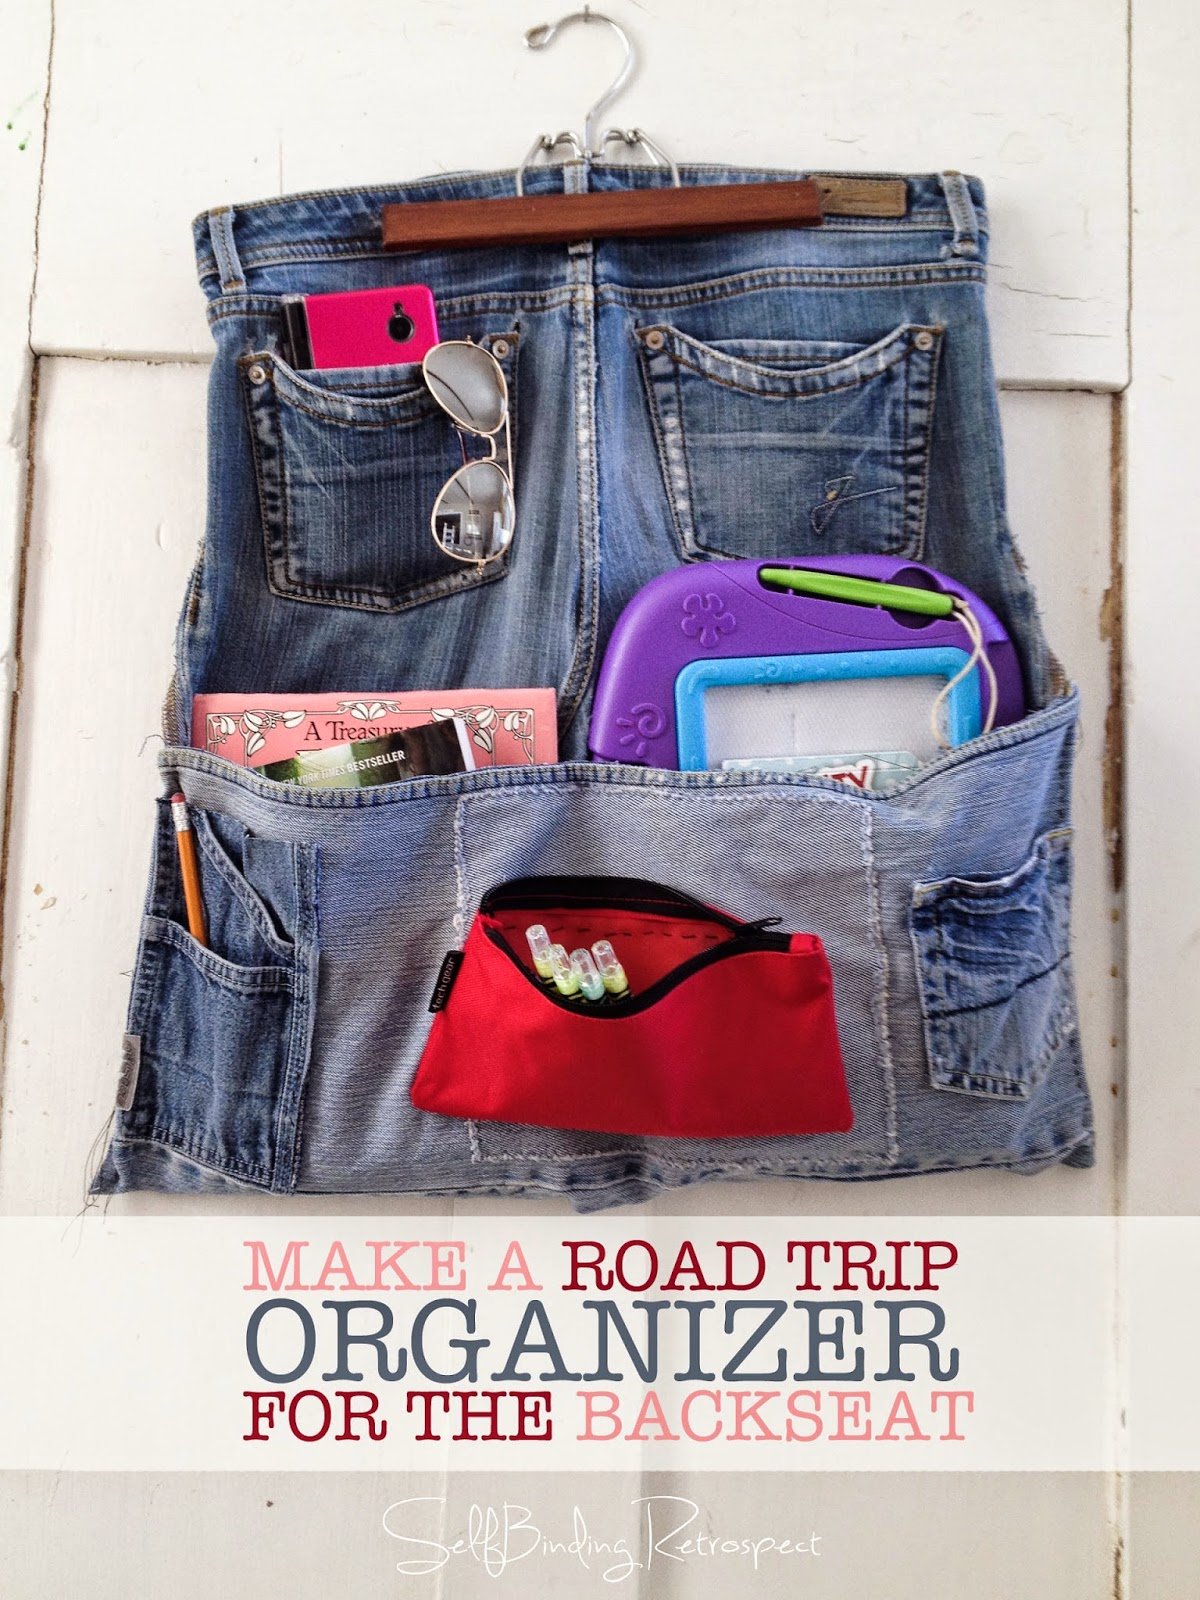 find or make a great organizer for your backseat